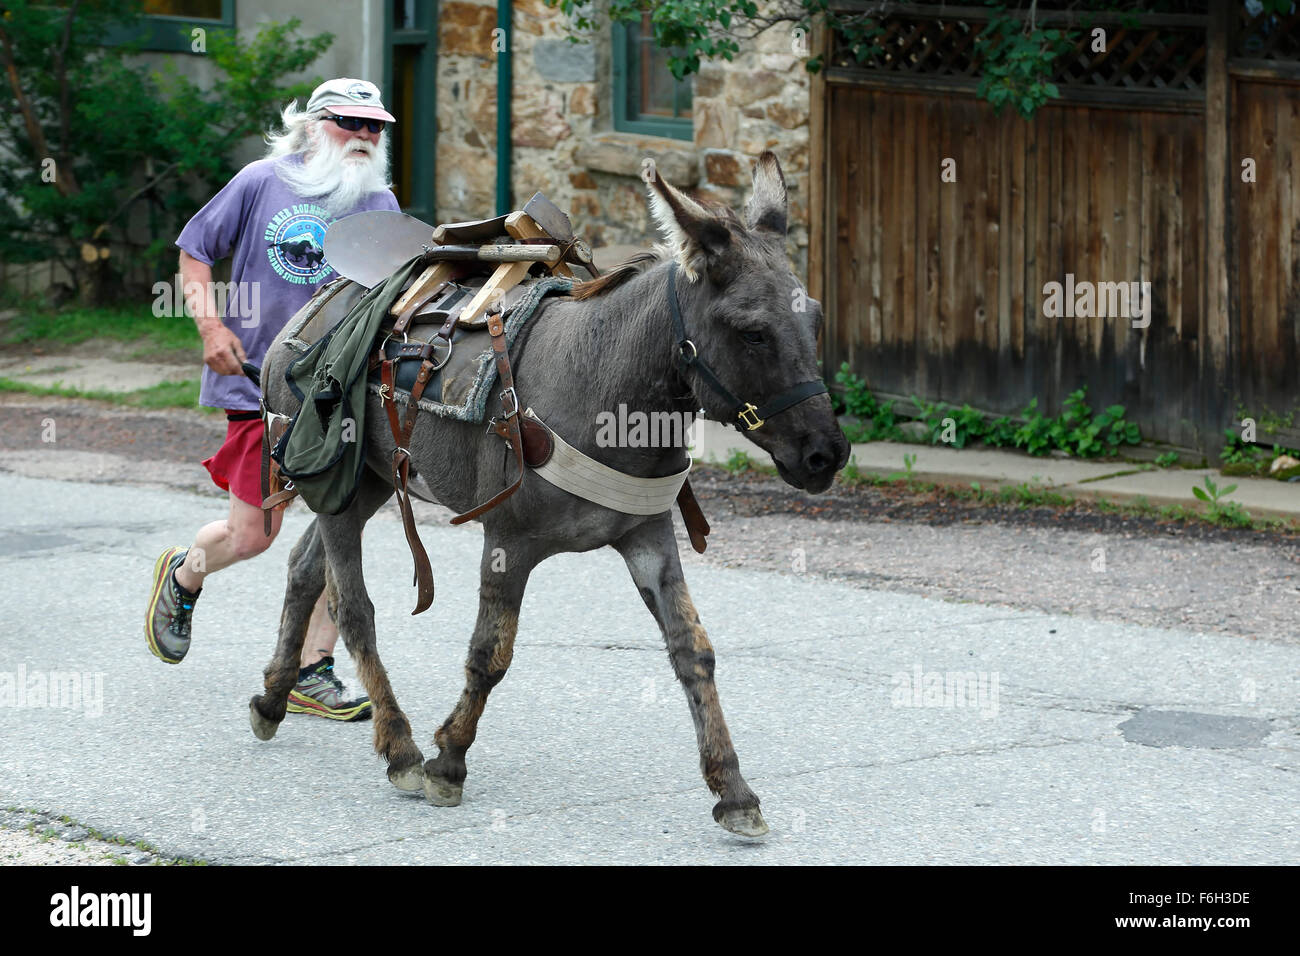 Runner and pack burros, Idaho Springs Tommyknockers Mining Days Festival and Pack Burro Race, Idaho Springs, Colorado - Stock Image